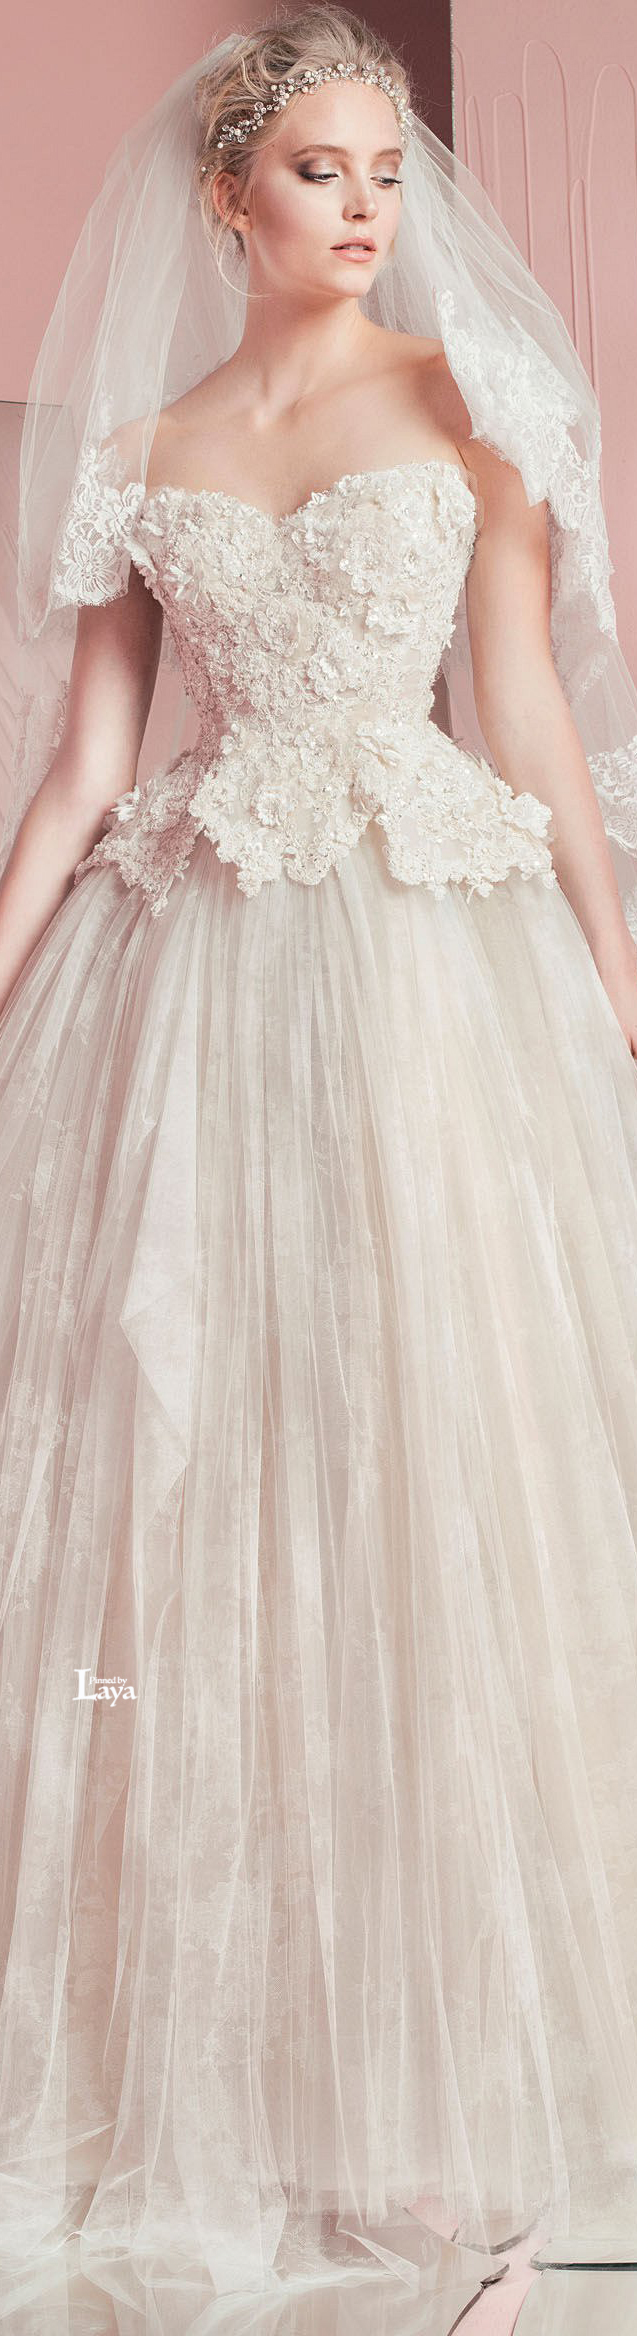 ♔ZUHAIR MURAD S/S 2016 BRIDAL♔ #coupon code nicesup123 gets 25 ...